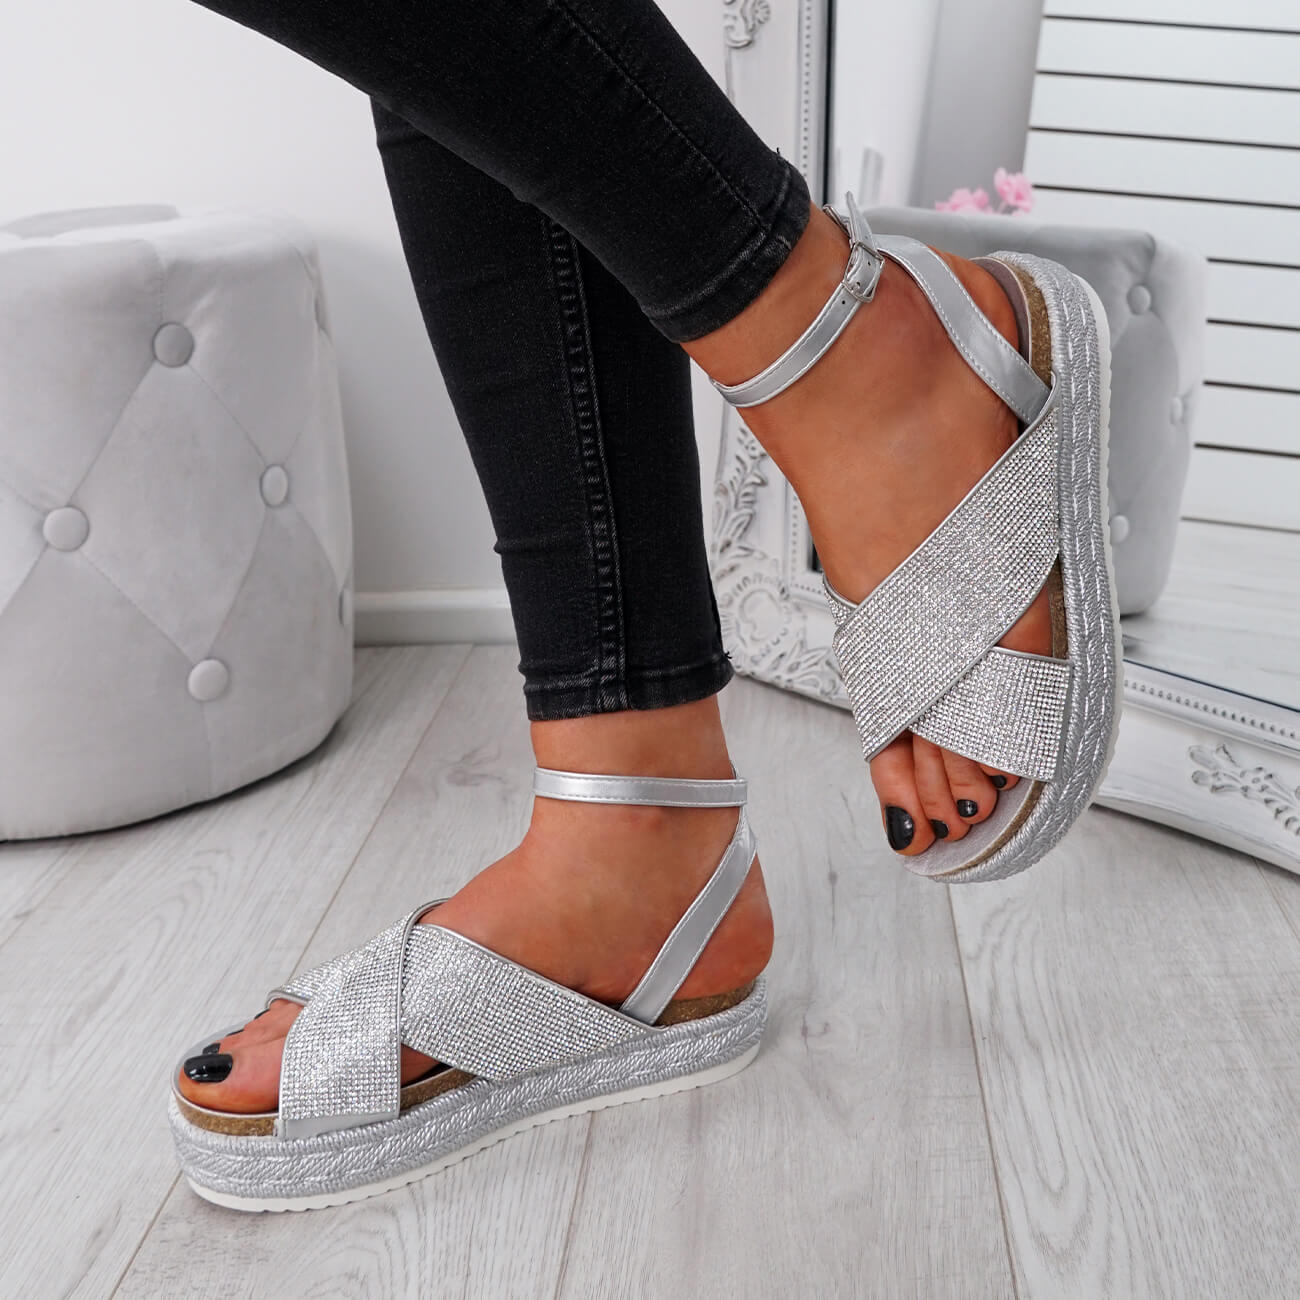 WOMENS-LADIES-ANKLE-STRAP-PEEP-TOE-STUDDED-LOW-HEEL-SANDALS-SHOES-SIZE-UK thumbnail 19